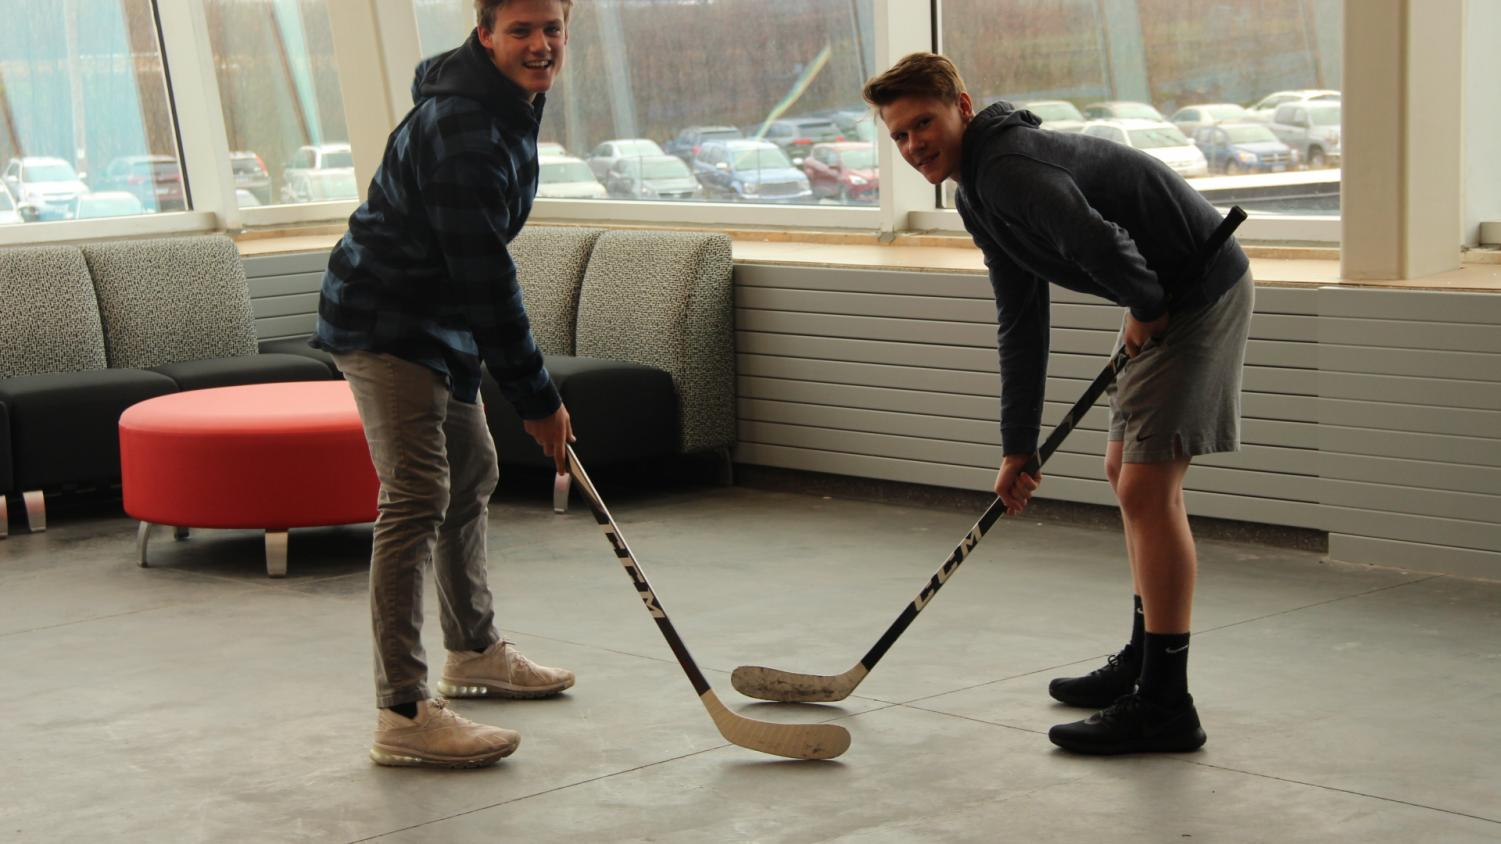 Juniors Spencer Gudowski and Gunnar Hansen face off in the 2nd floor balcony on November 6. The two hockey players are both participants in the Fellowship of Christian Athletes club.